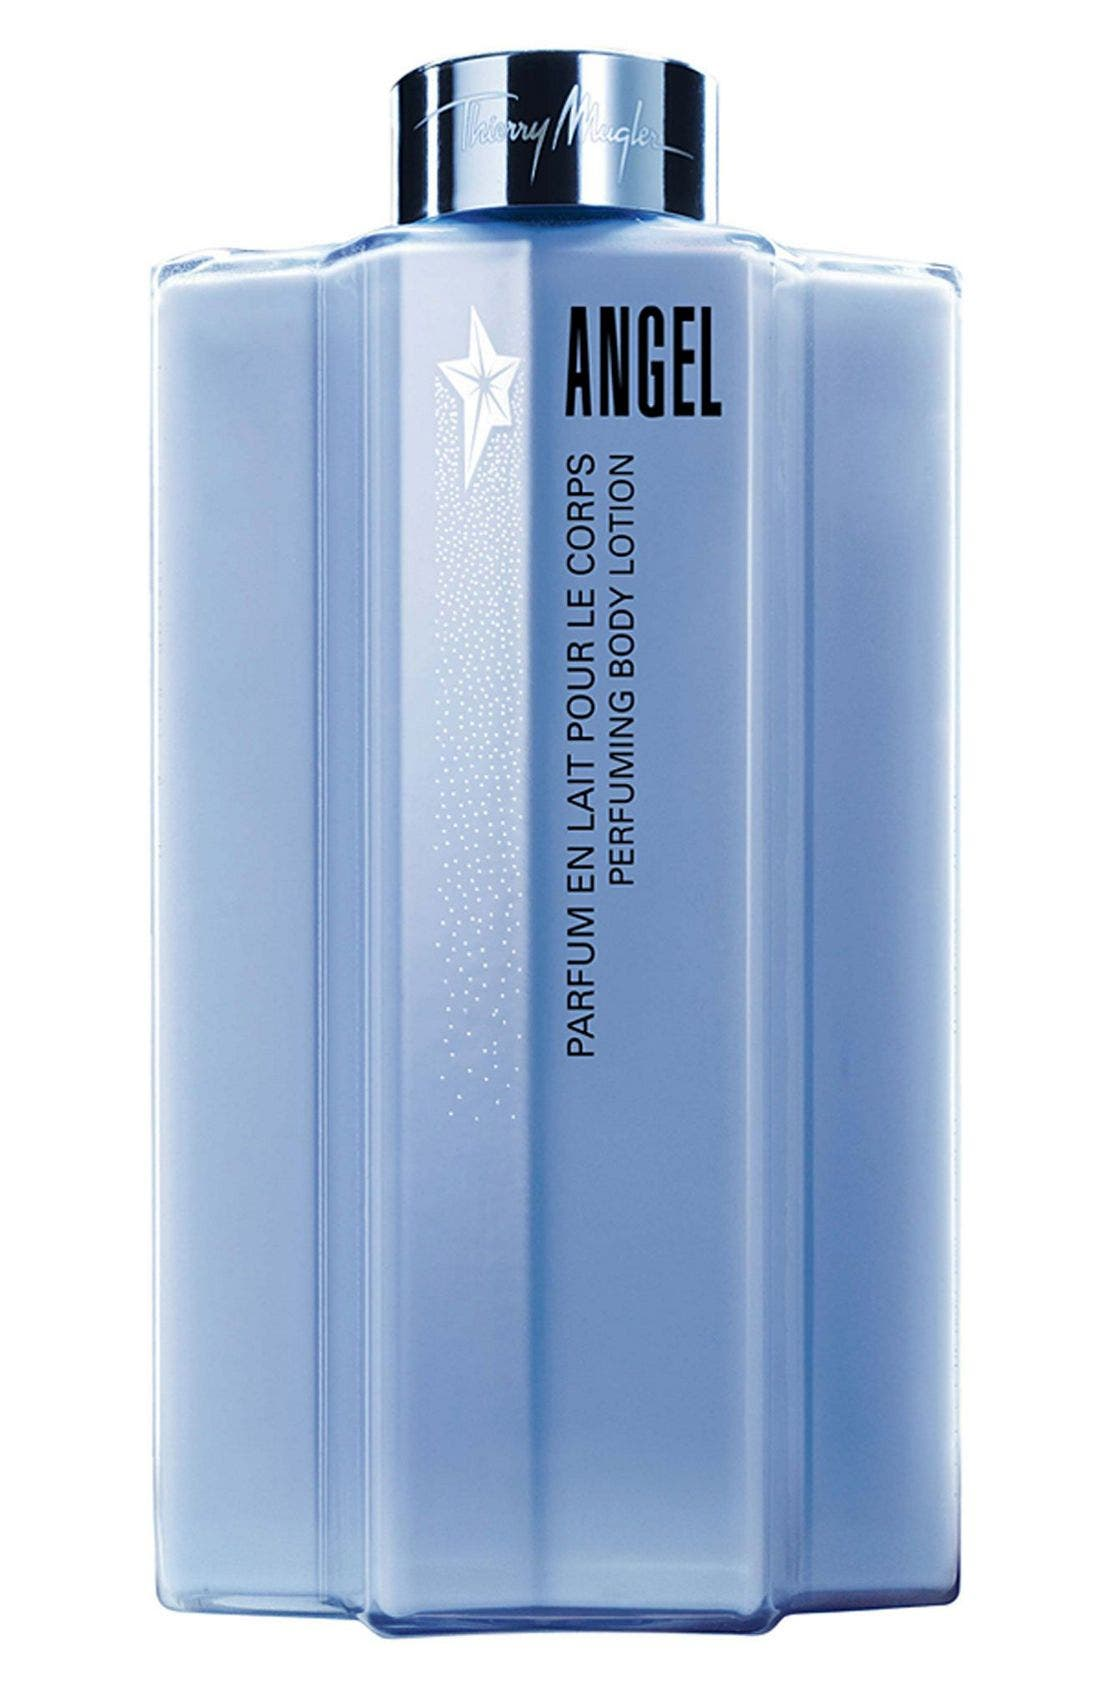 Angel by Mugler Perfuming Body Lotion